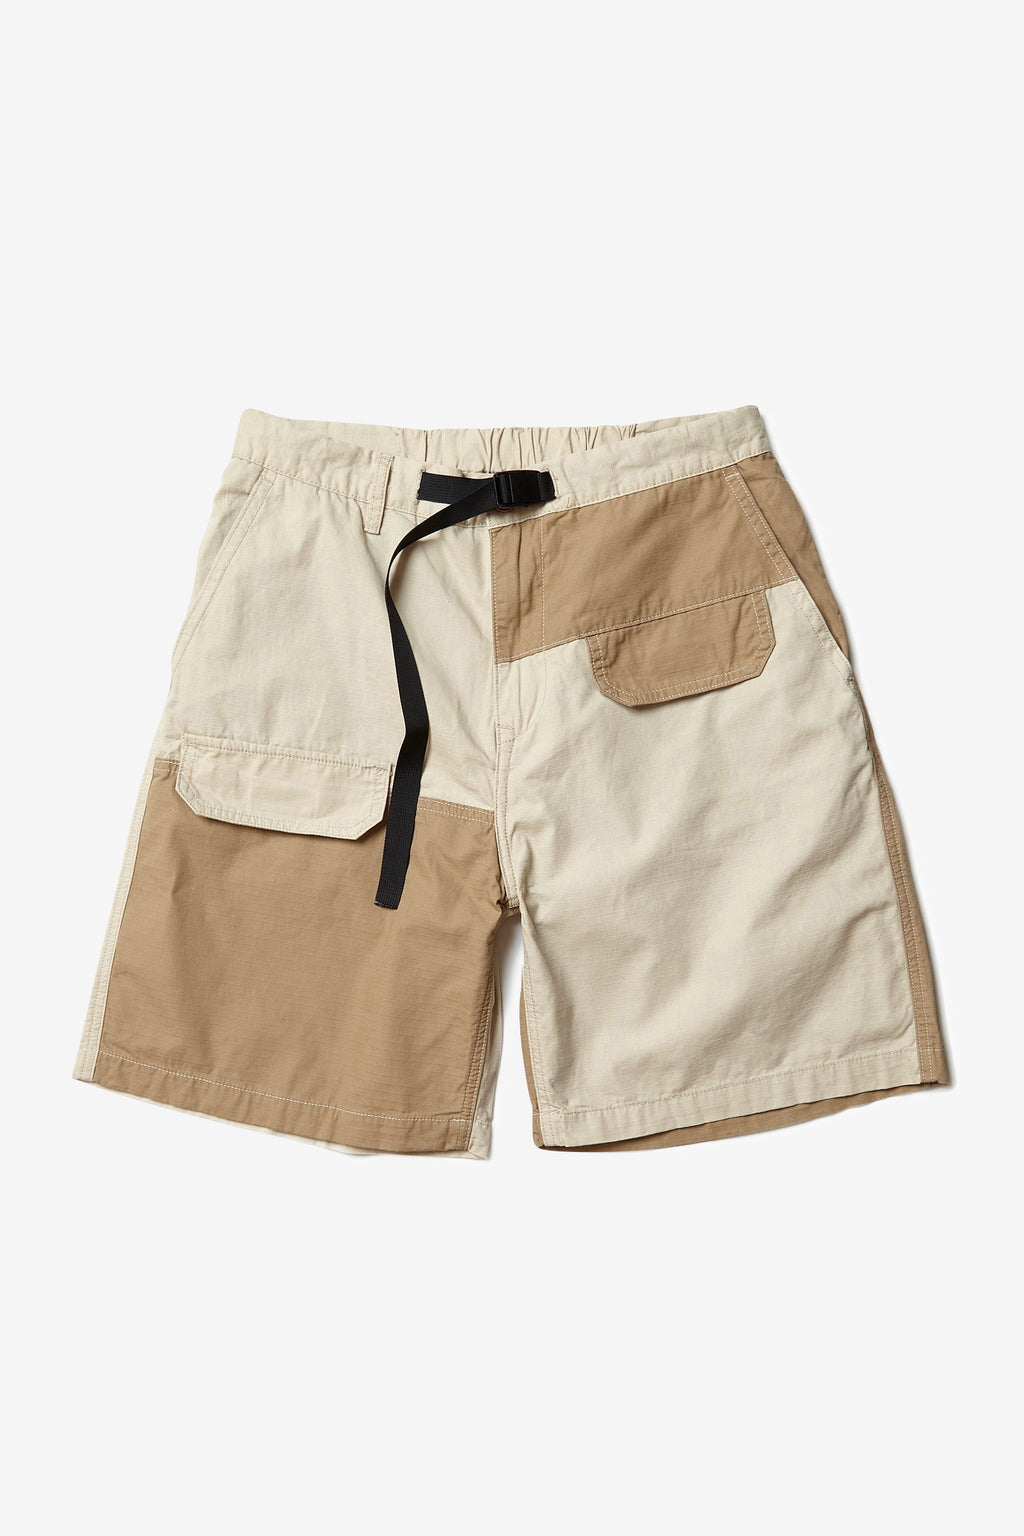 Blacksmith - Ripstop Utility Shorts - Natural